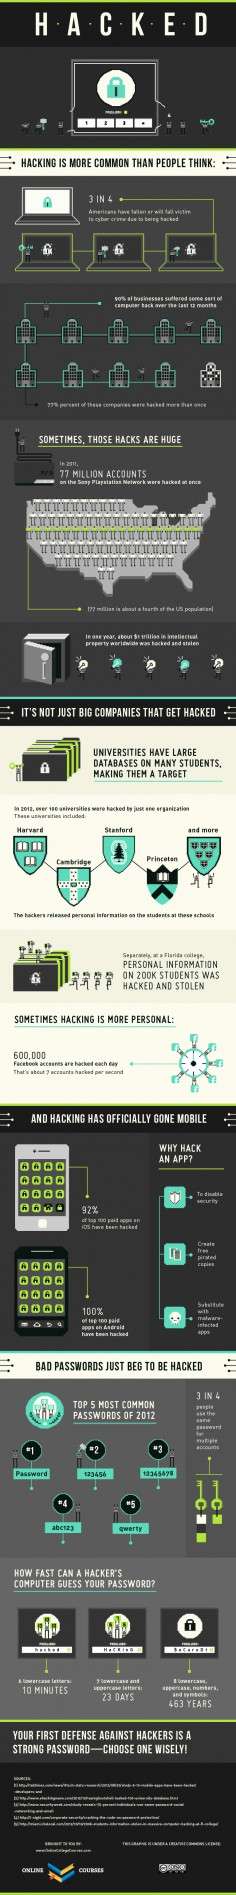 Hacked Infographic